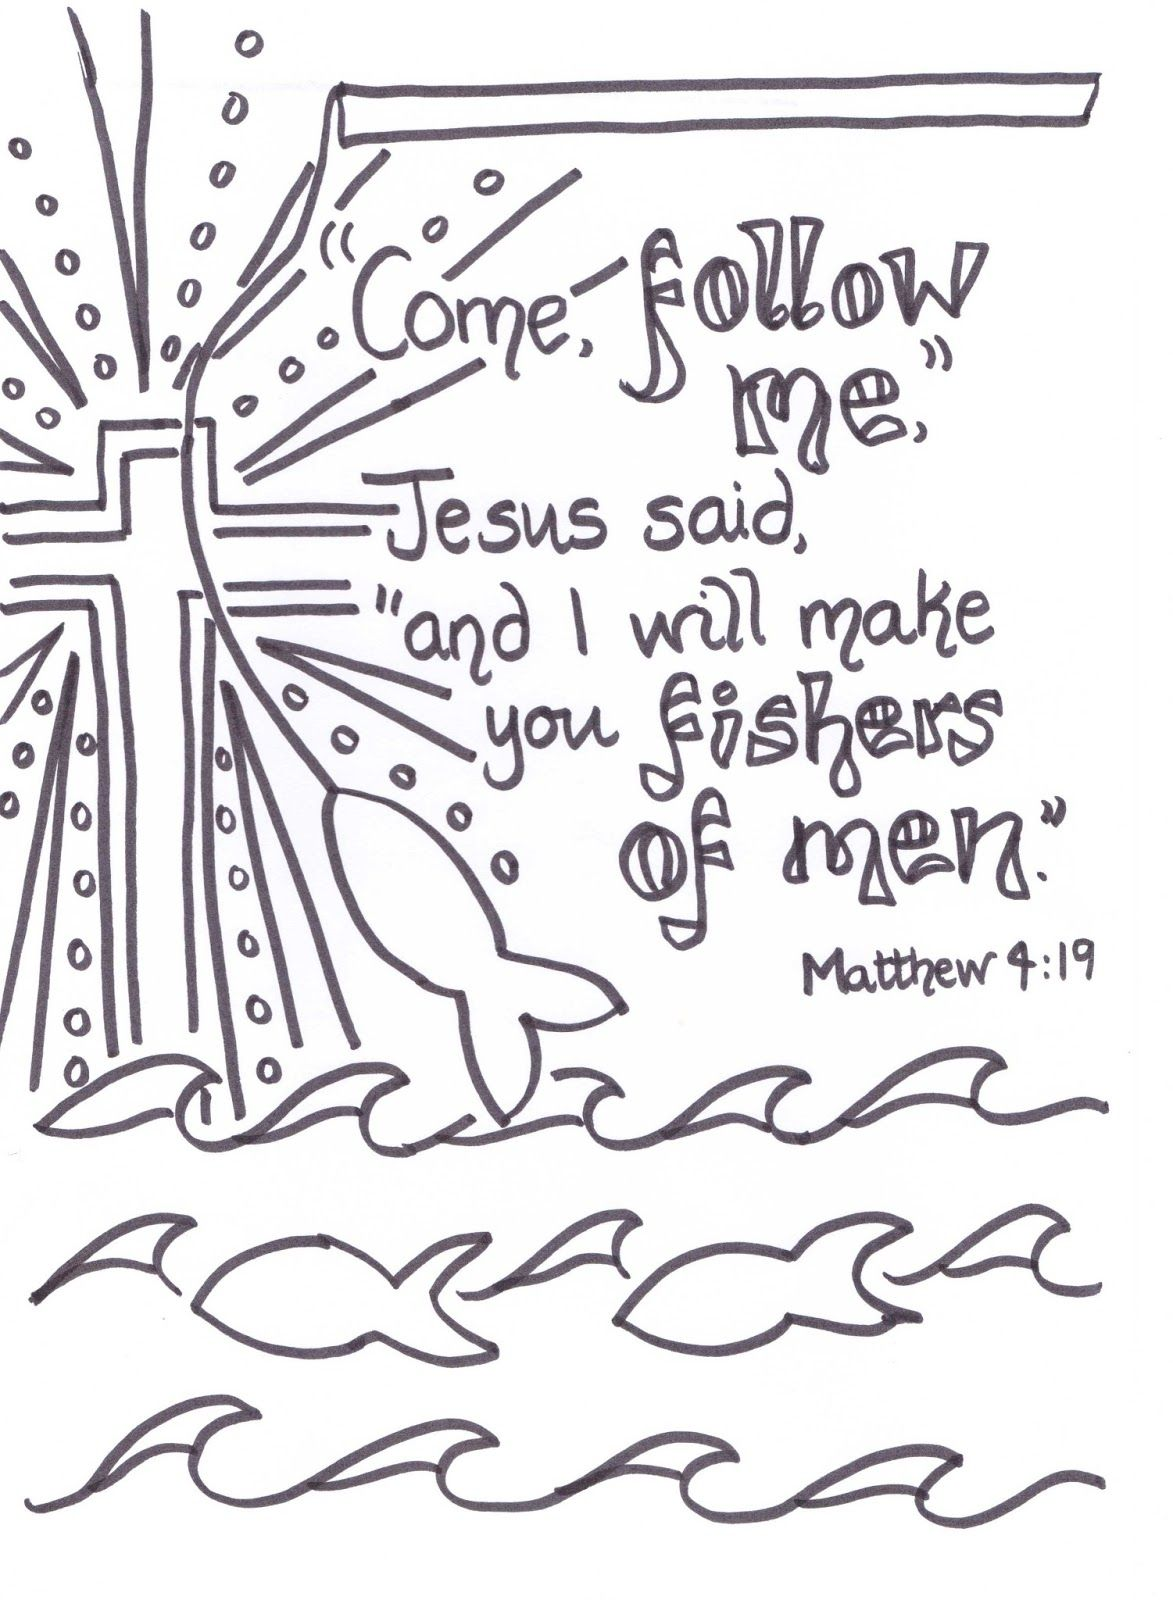 Fishers Of Men Bible Story Coloring Page For Kids Matthew 4 19